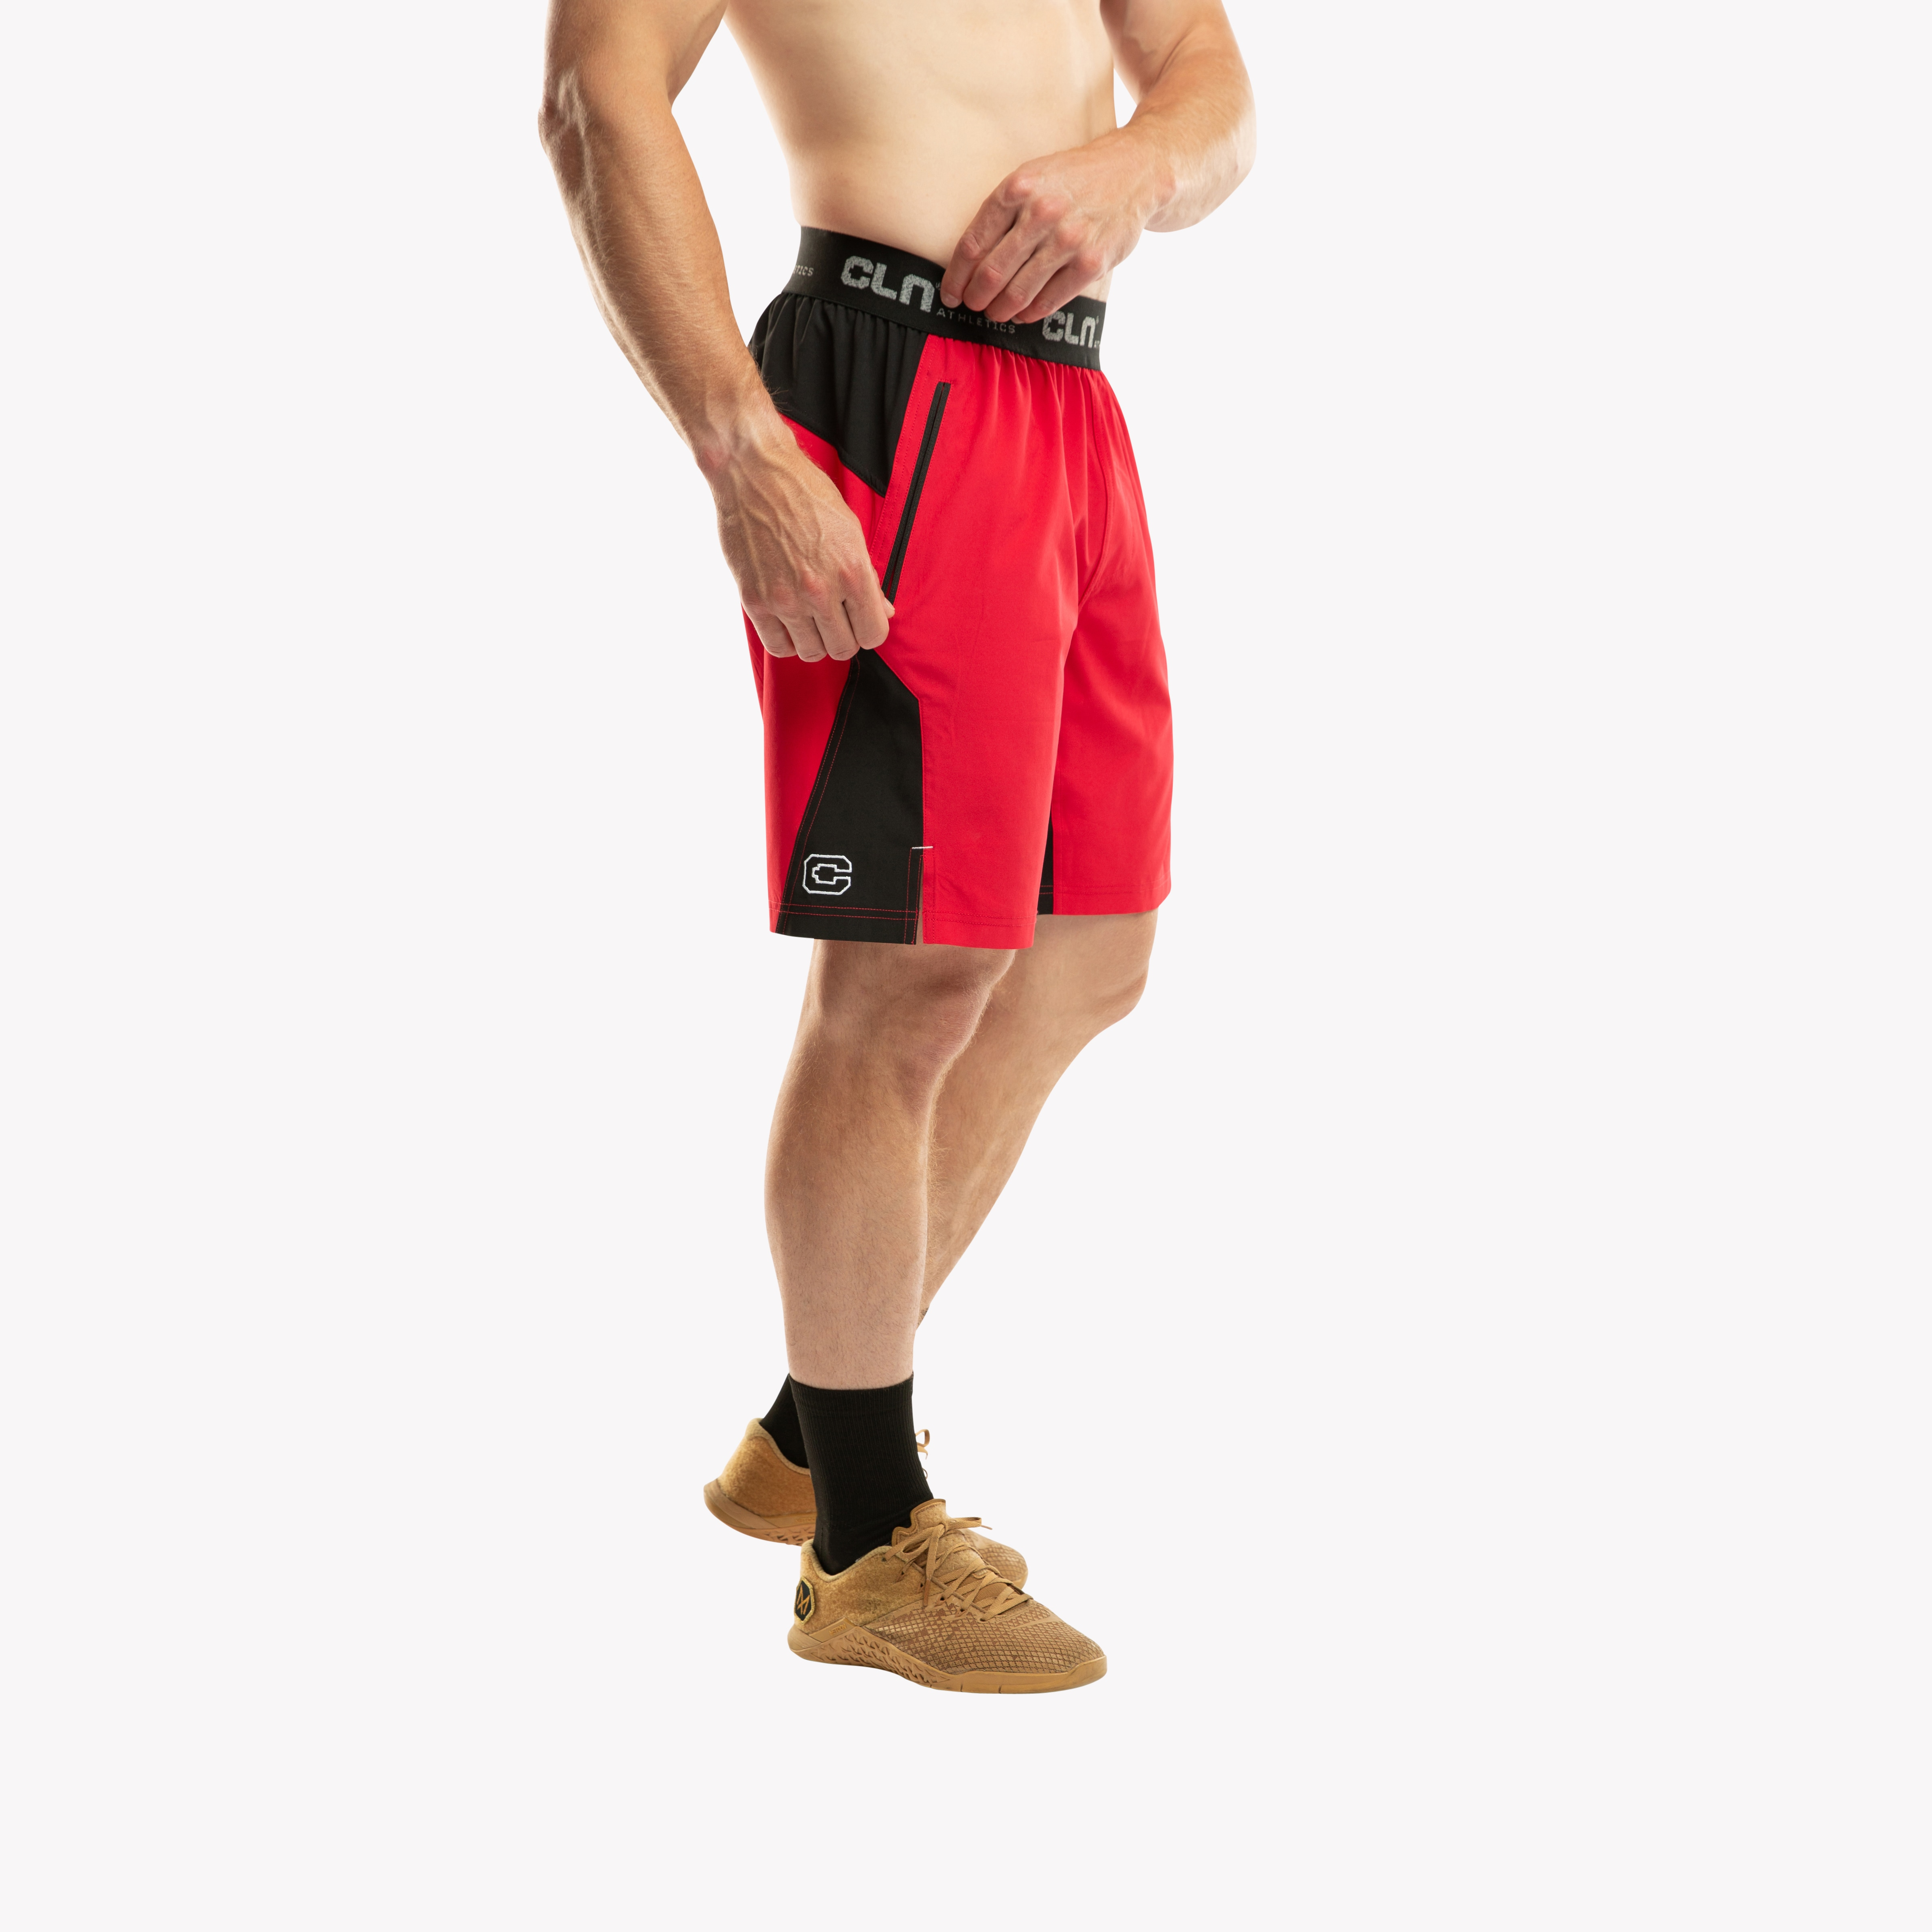 CLN Injection Shorts Red